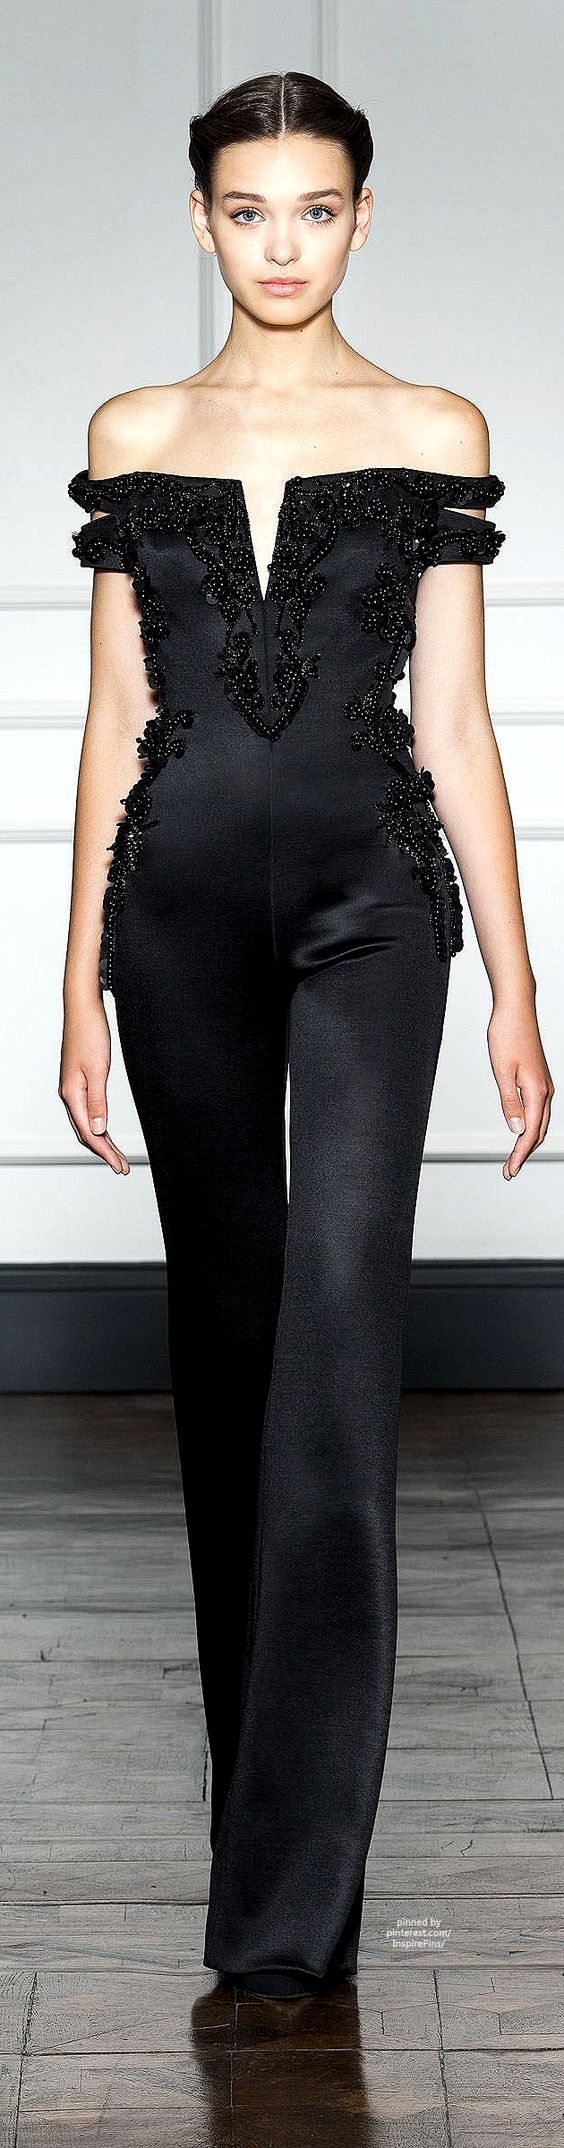 Outstanding jumpsuit by Dilek Hanif